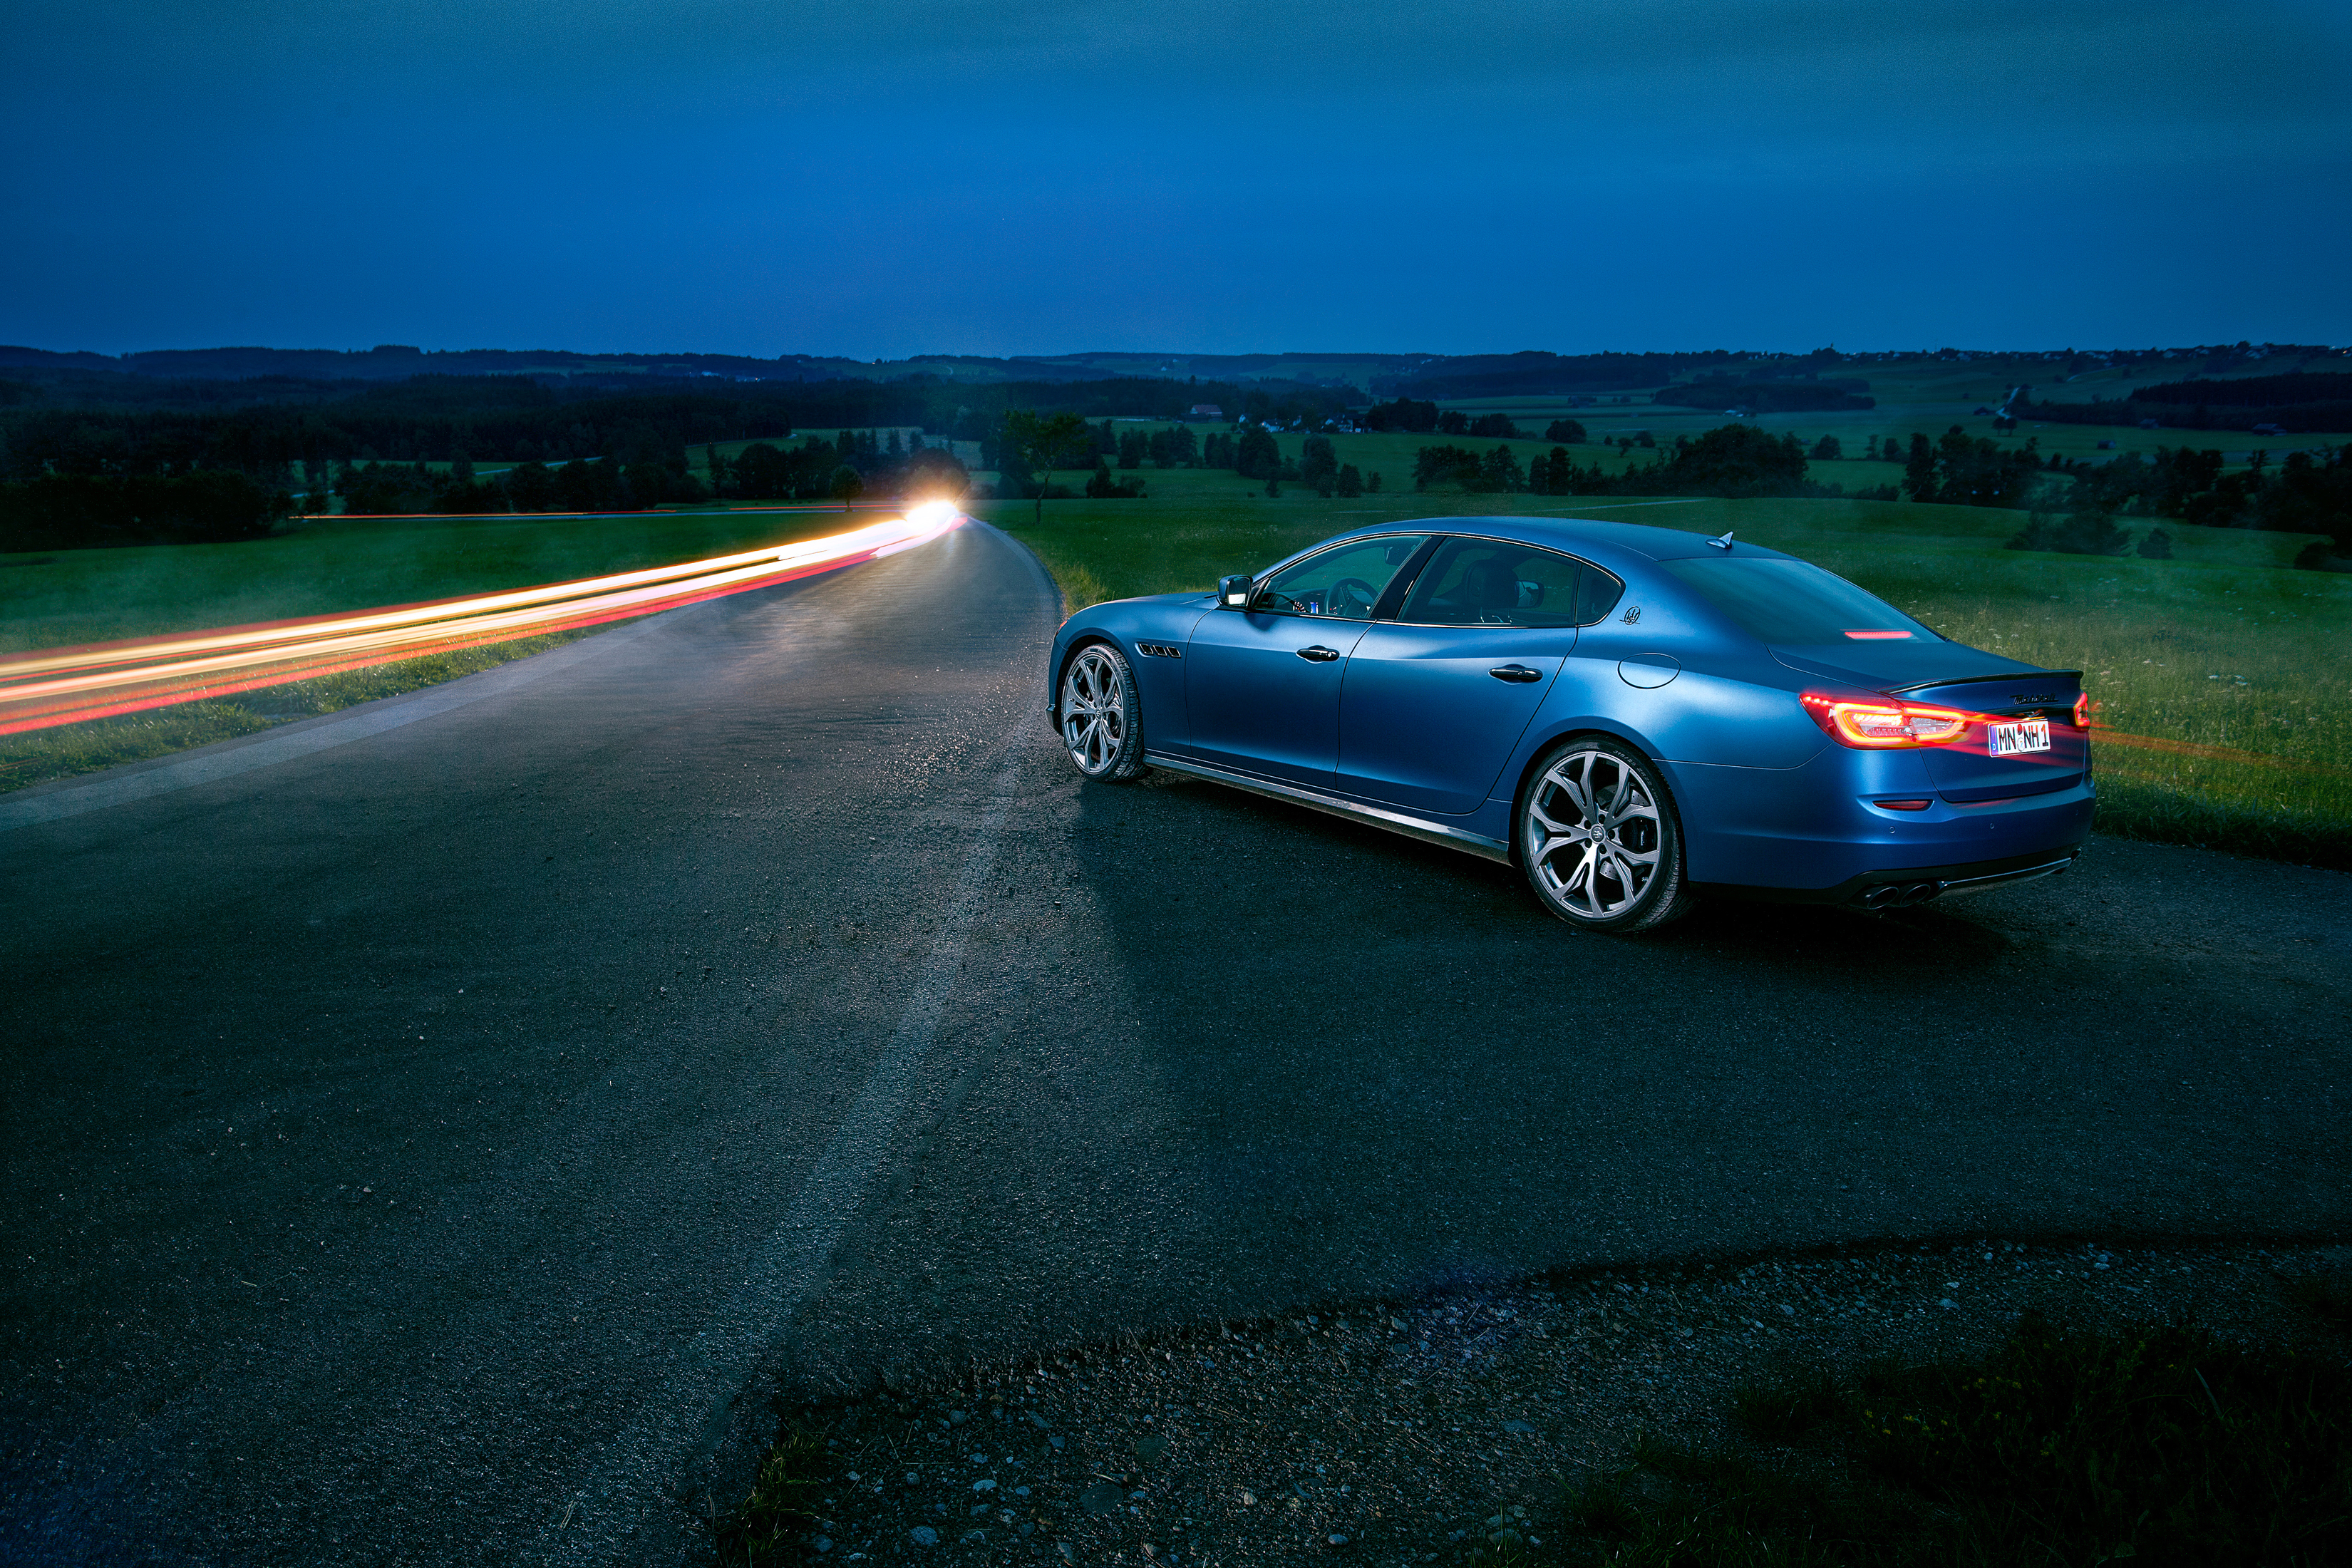 156671 download wallpaper Cars, Maserati, Quattroporte, Novitec, Side View, Excerpt screensavers and pictures for free